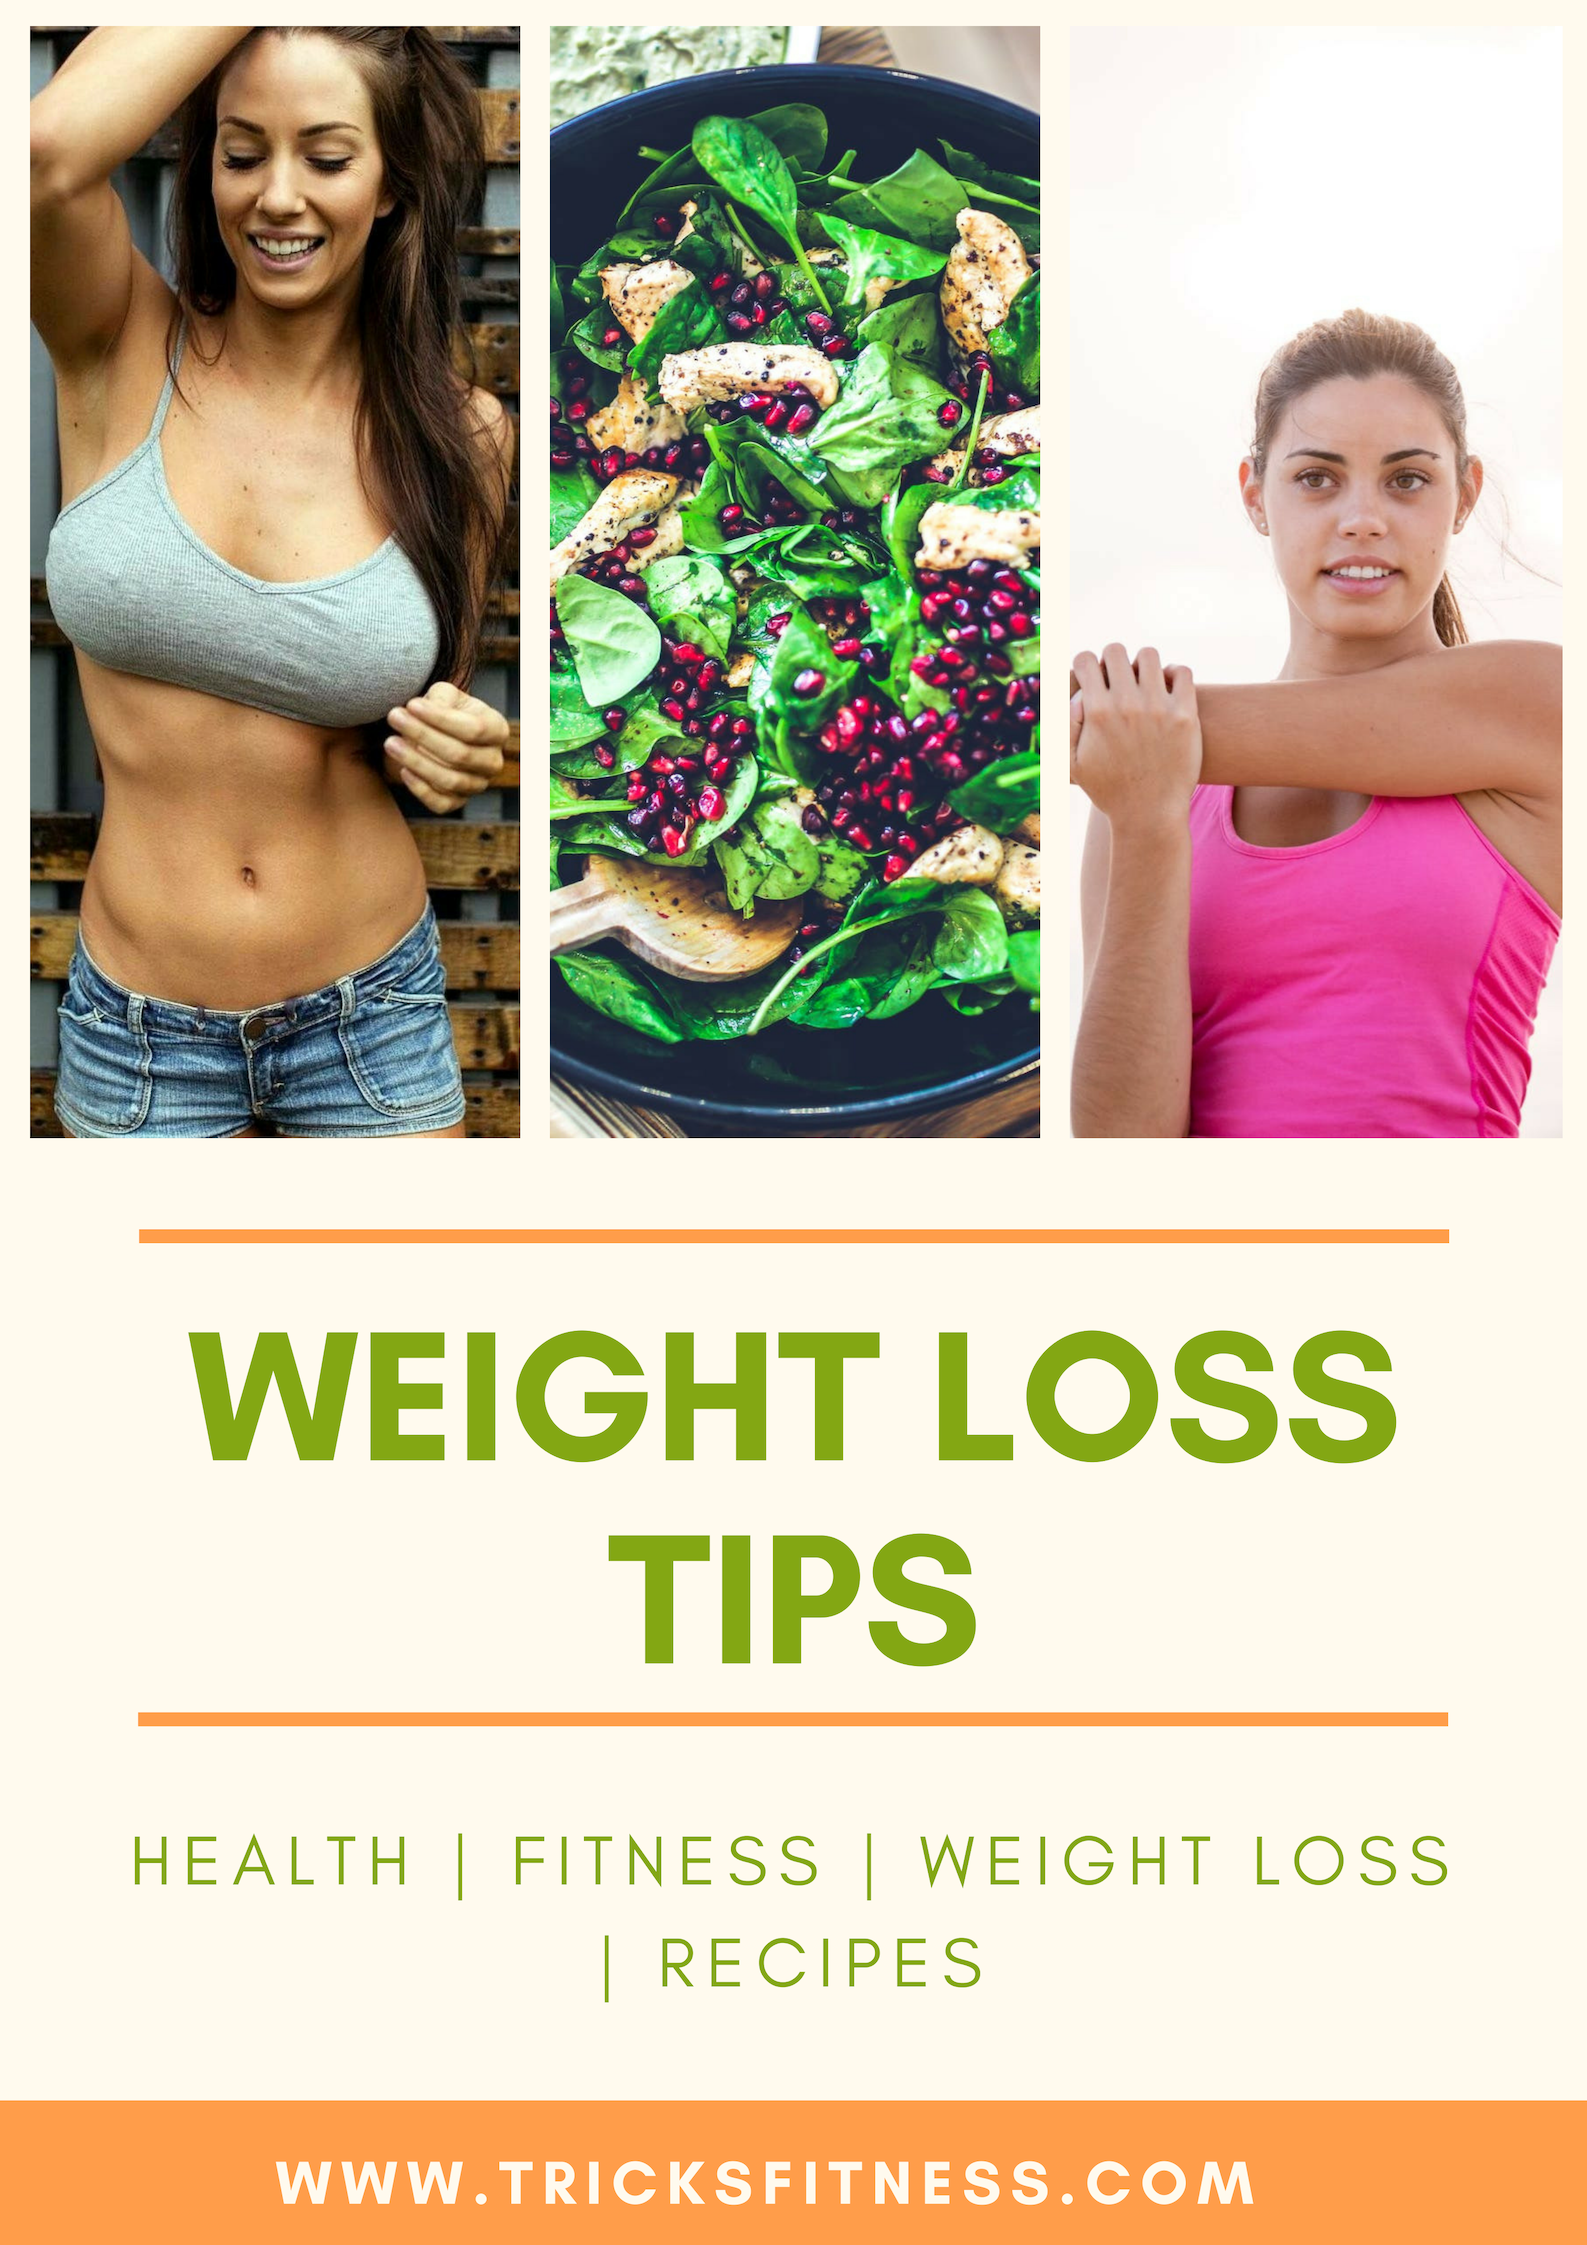 Quick weight loss diets without exercise #rapidweightloss  | food to lose weight fast for women#weig...